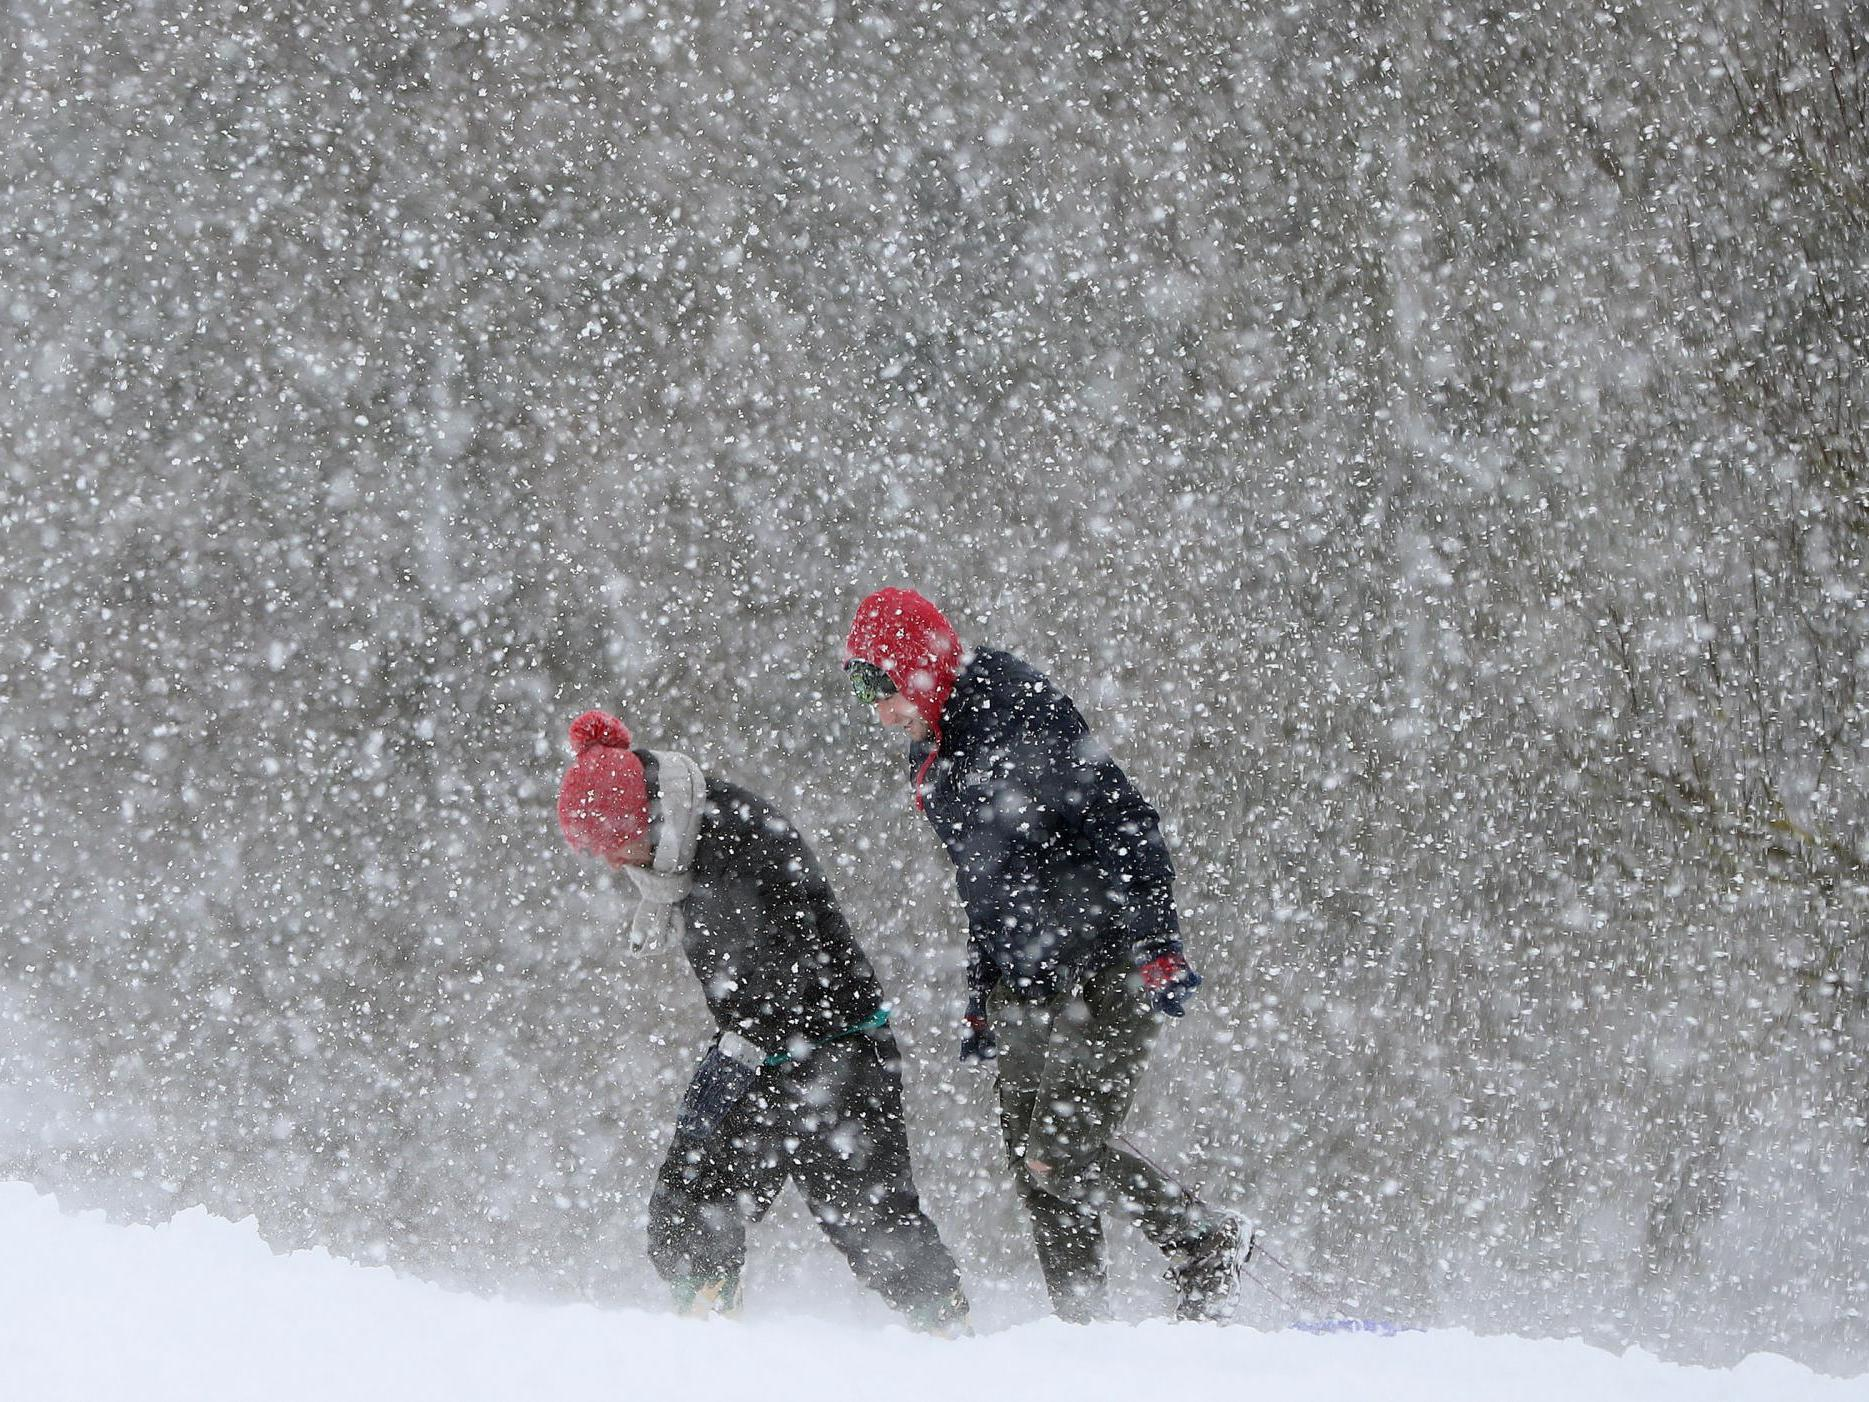 Britain facing new 'Beast from the East' in what could be coldest winter in 30 years